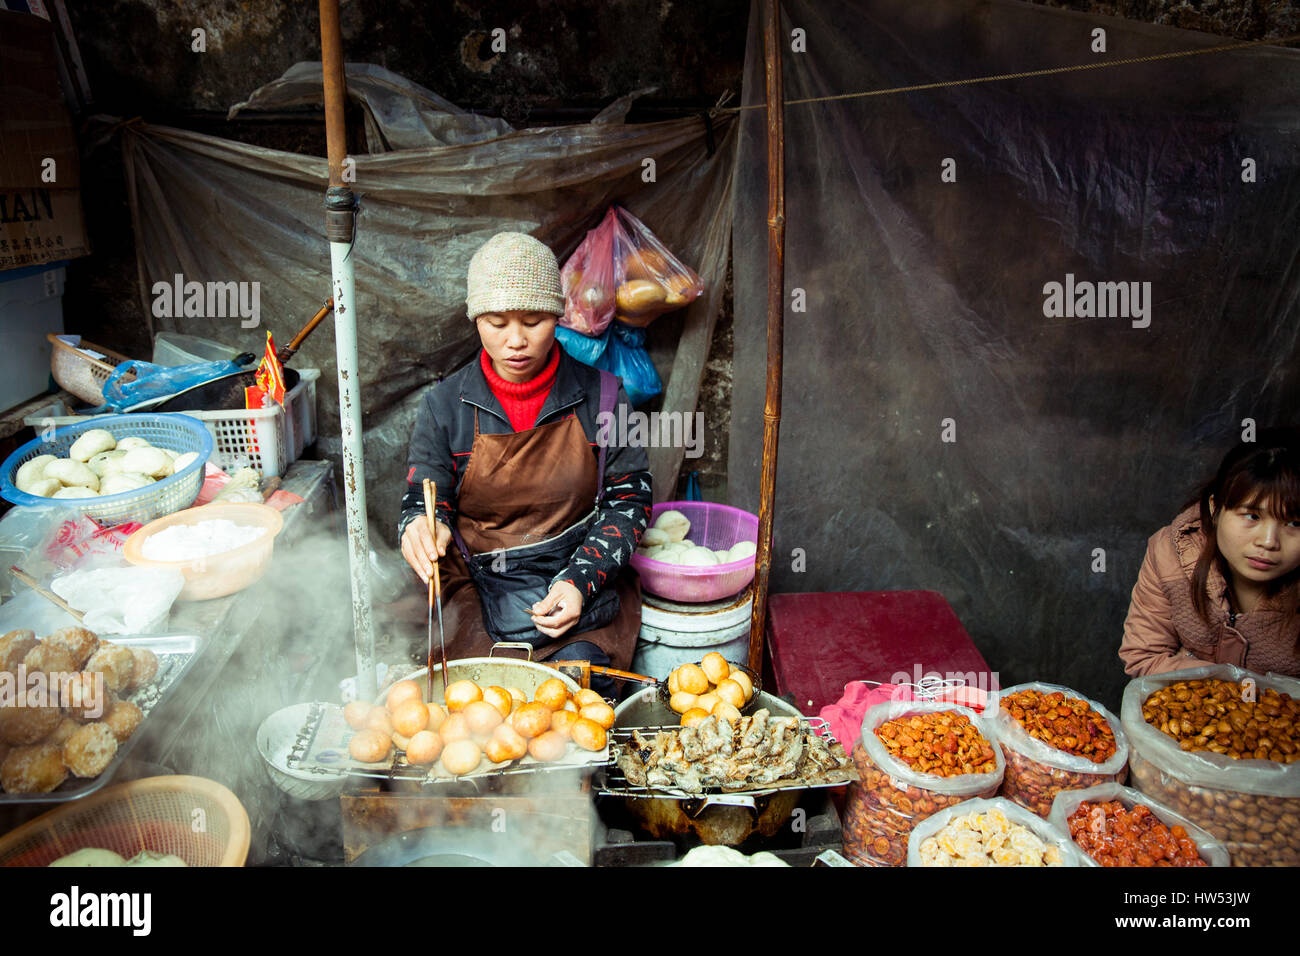 tribal woman cooking food stockfotos tribal woman cooking food bilder alamy. Black Bedroom Furniture Sets. Home Design Ideas